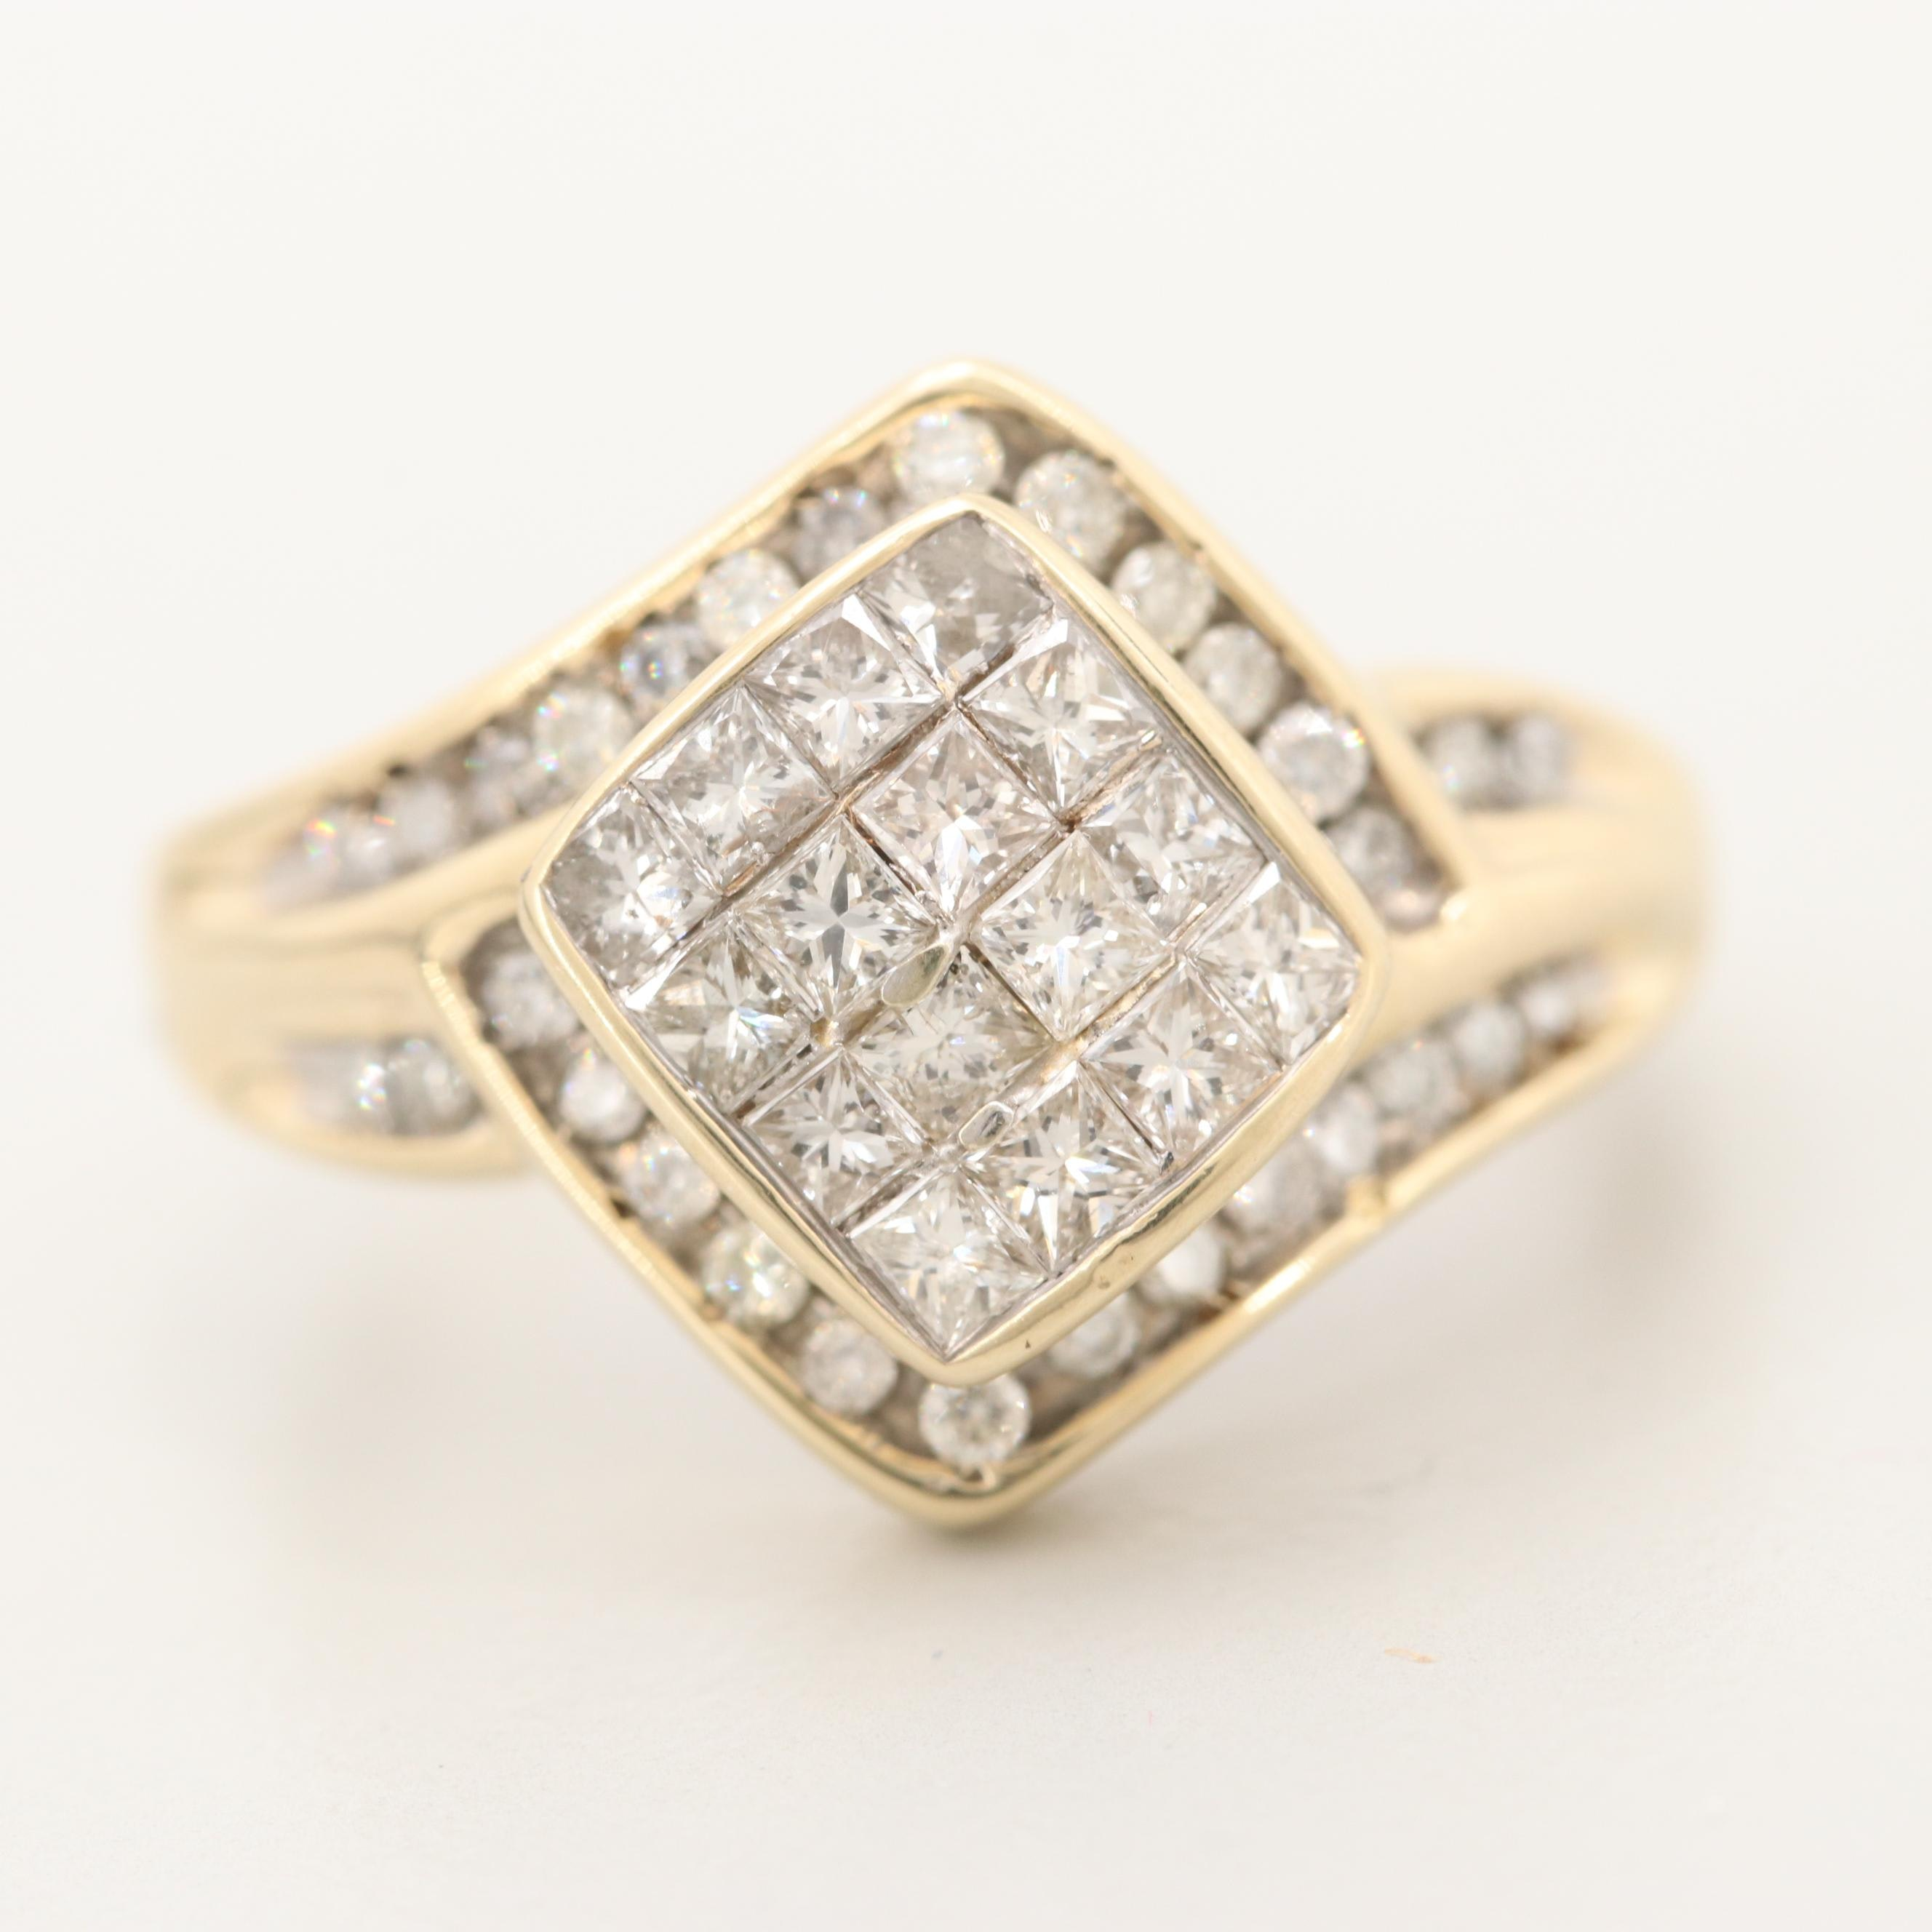 10K Yellow Gold 1.02 CTW Diamond Ring